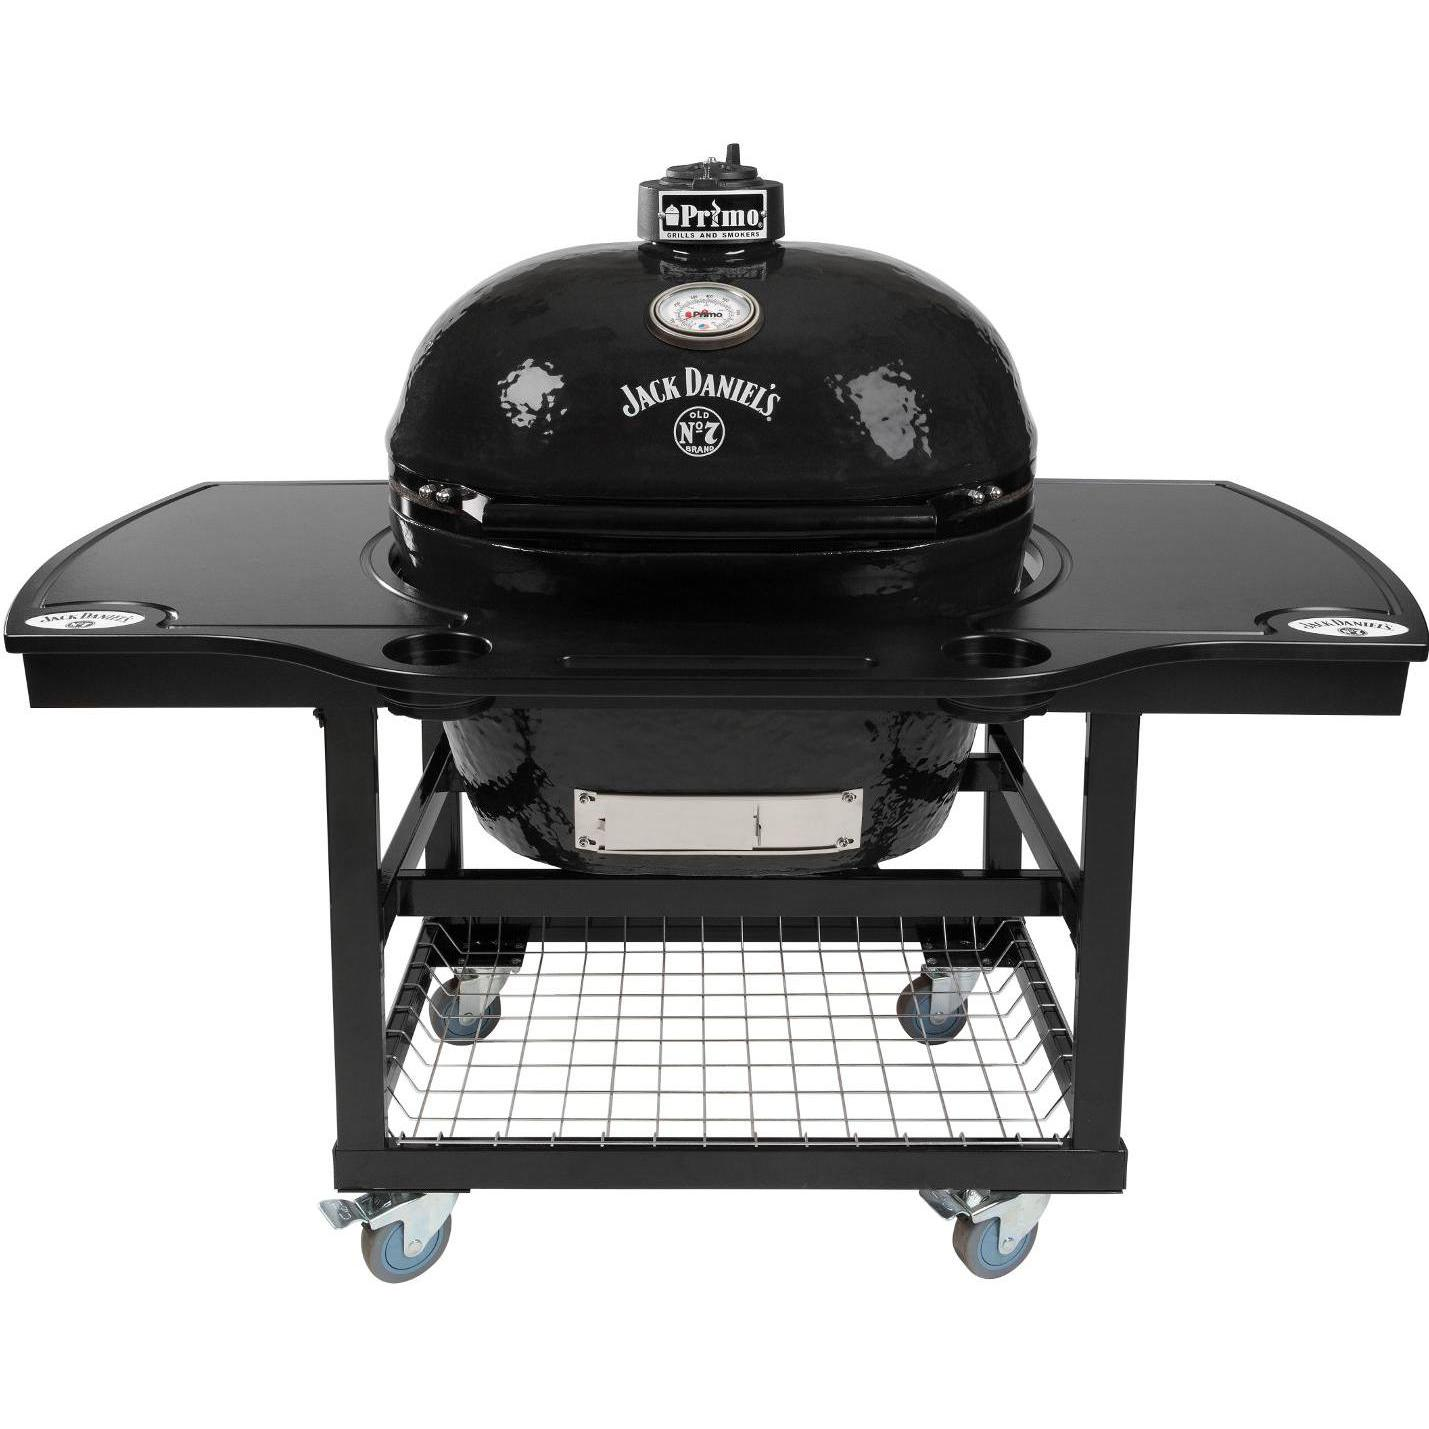 Primo Jack Daniels Edition Oval XL Ceramic Kamado Grill On Steel Cart With 1-Piece Island Side Shelves & Cup Holders - 900 + 368 + 910